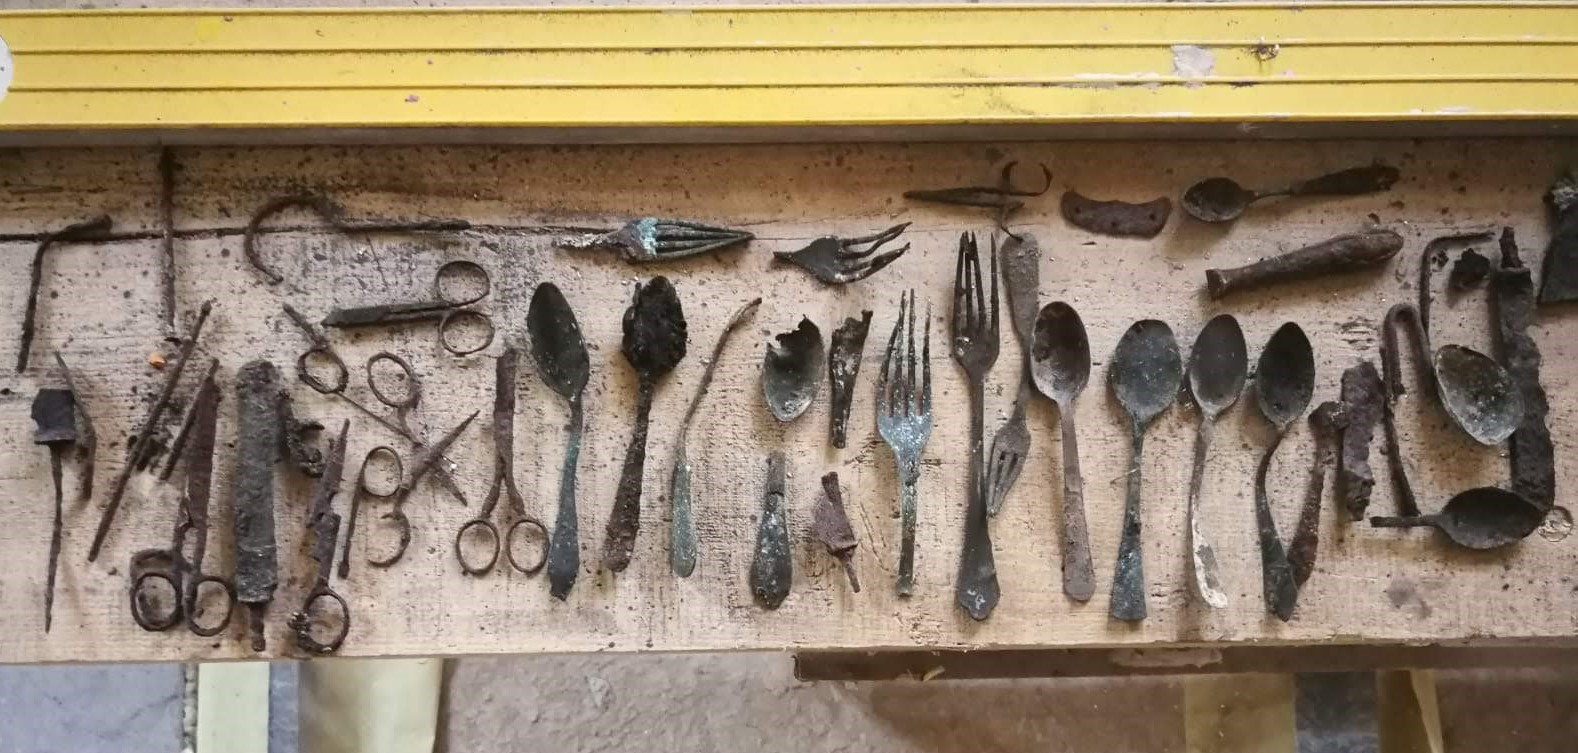 Tools hidden by prisoners found at Auschwitz